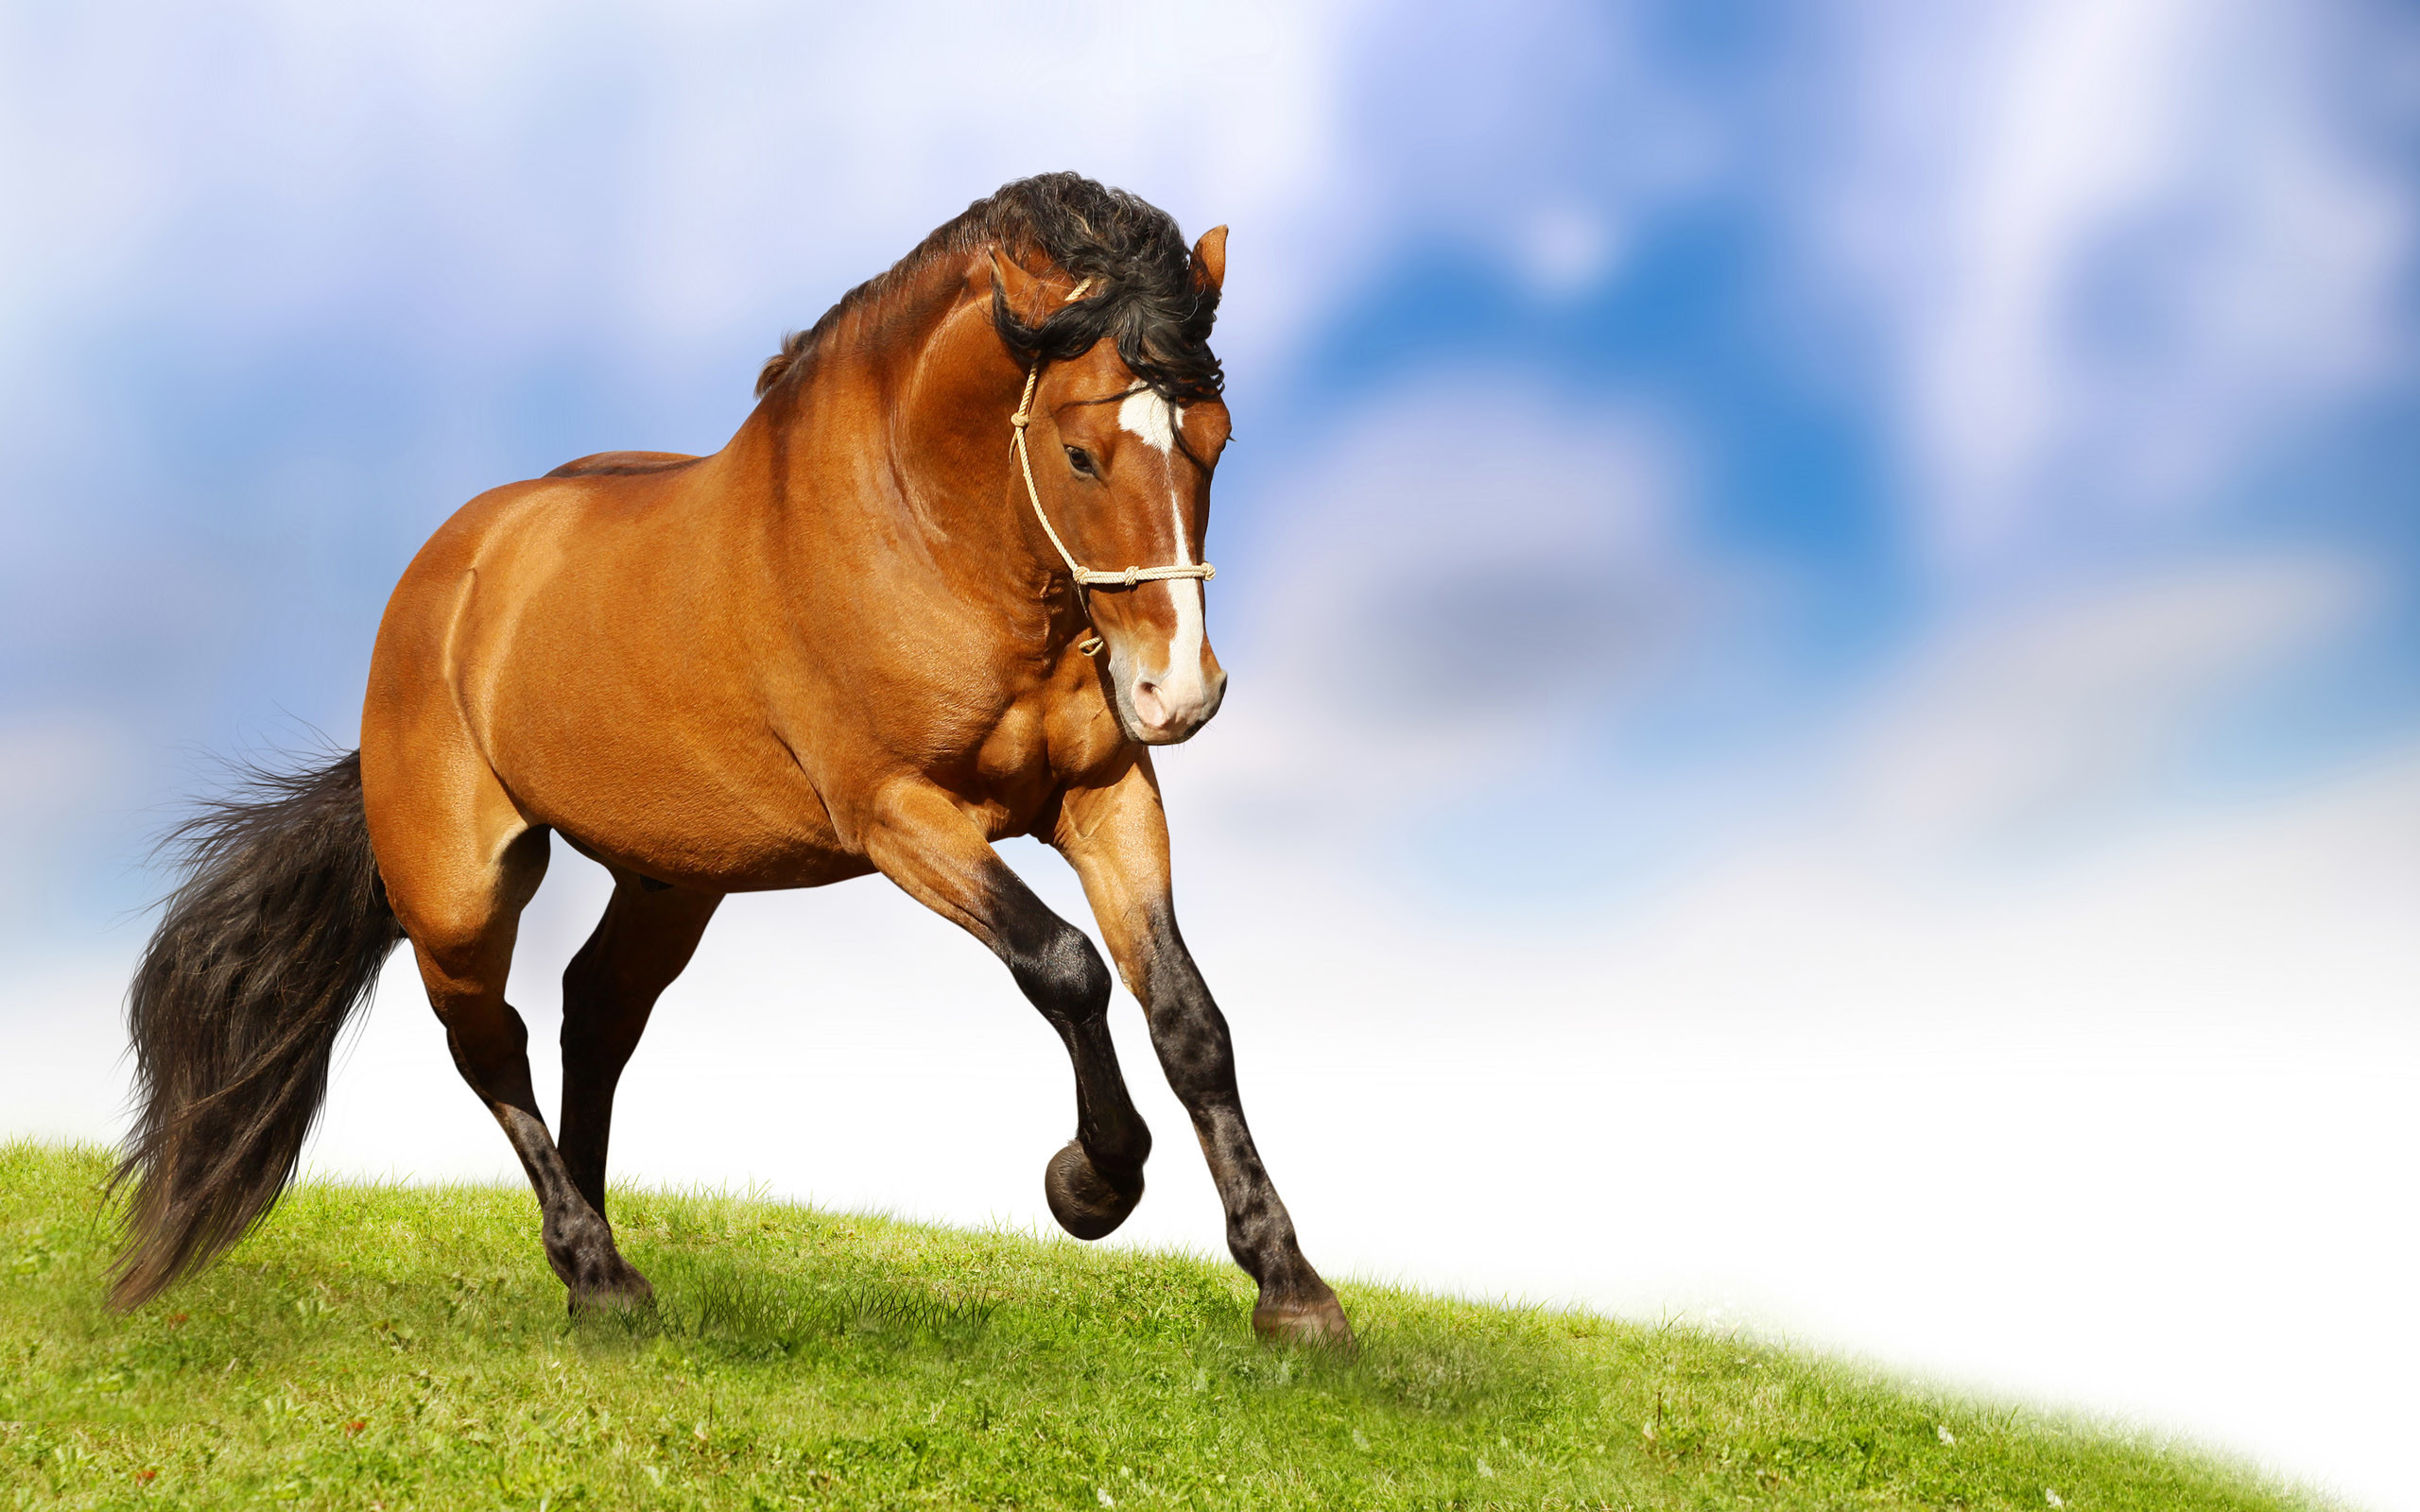 2560x1600 Wallpapers Wild Animals Horse On Grassland Scenery Horses